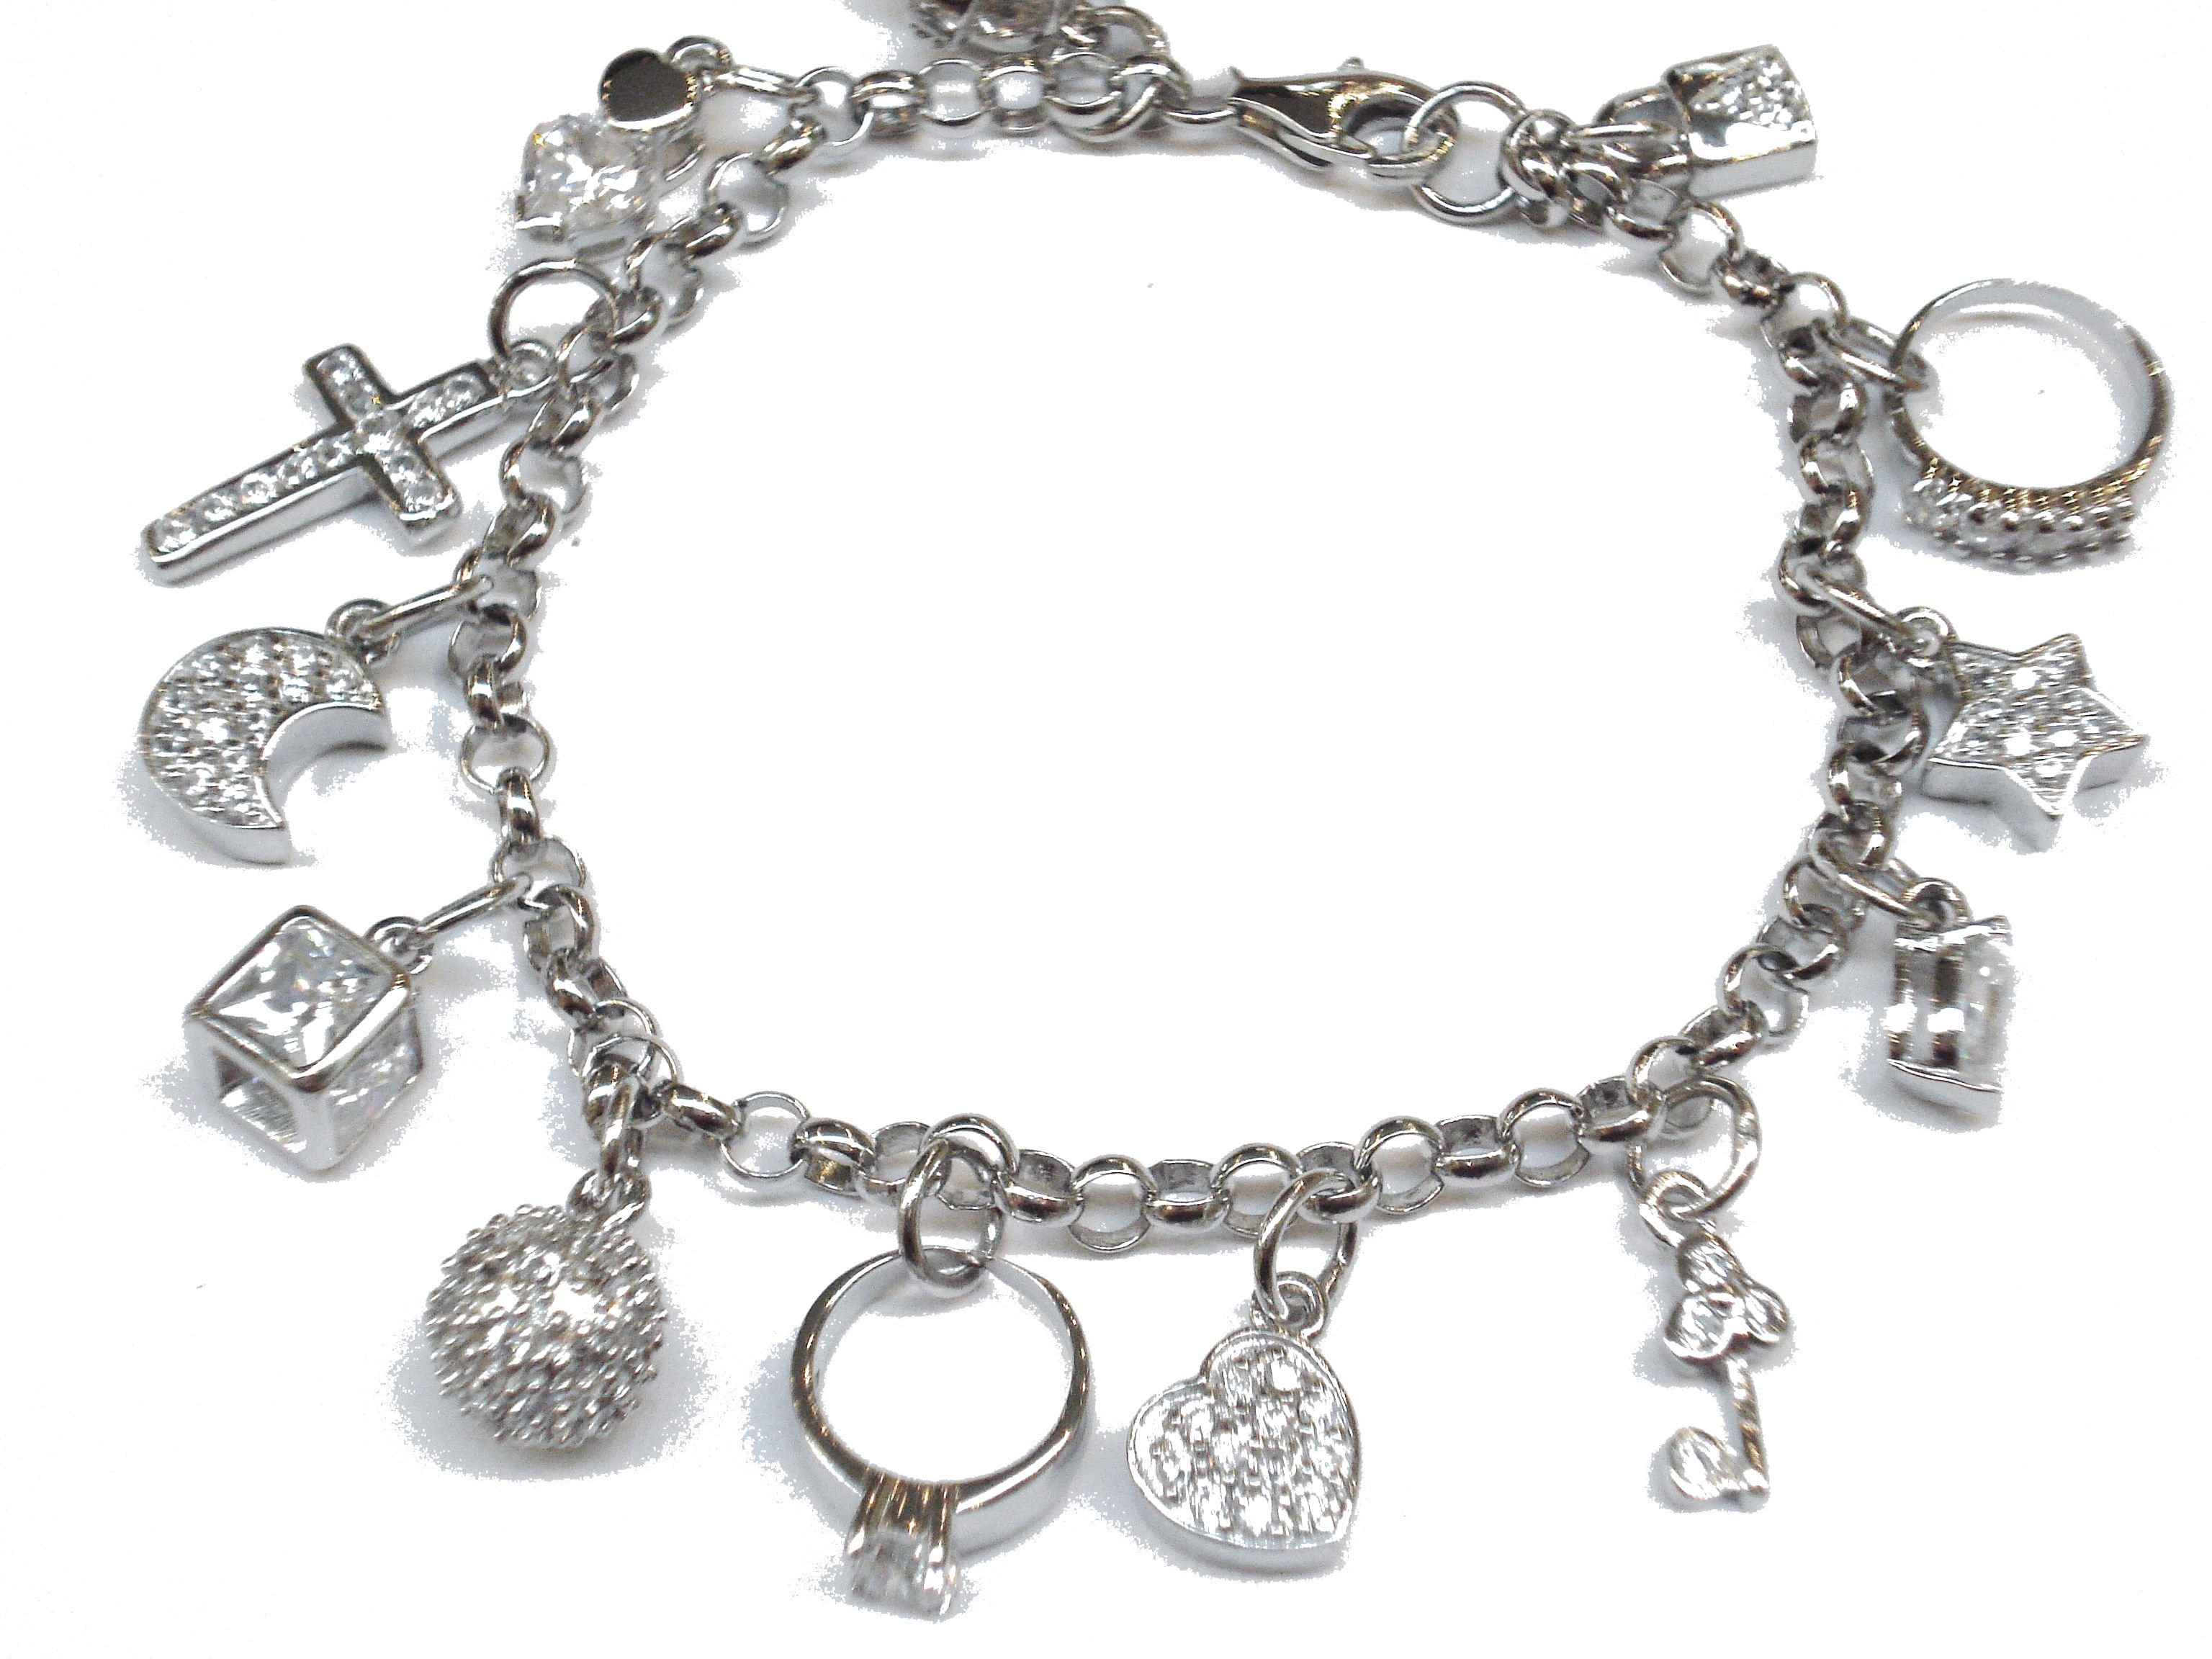 Custom Fit Sterling Silver Anklets, Bracelets And Chains By The Inch